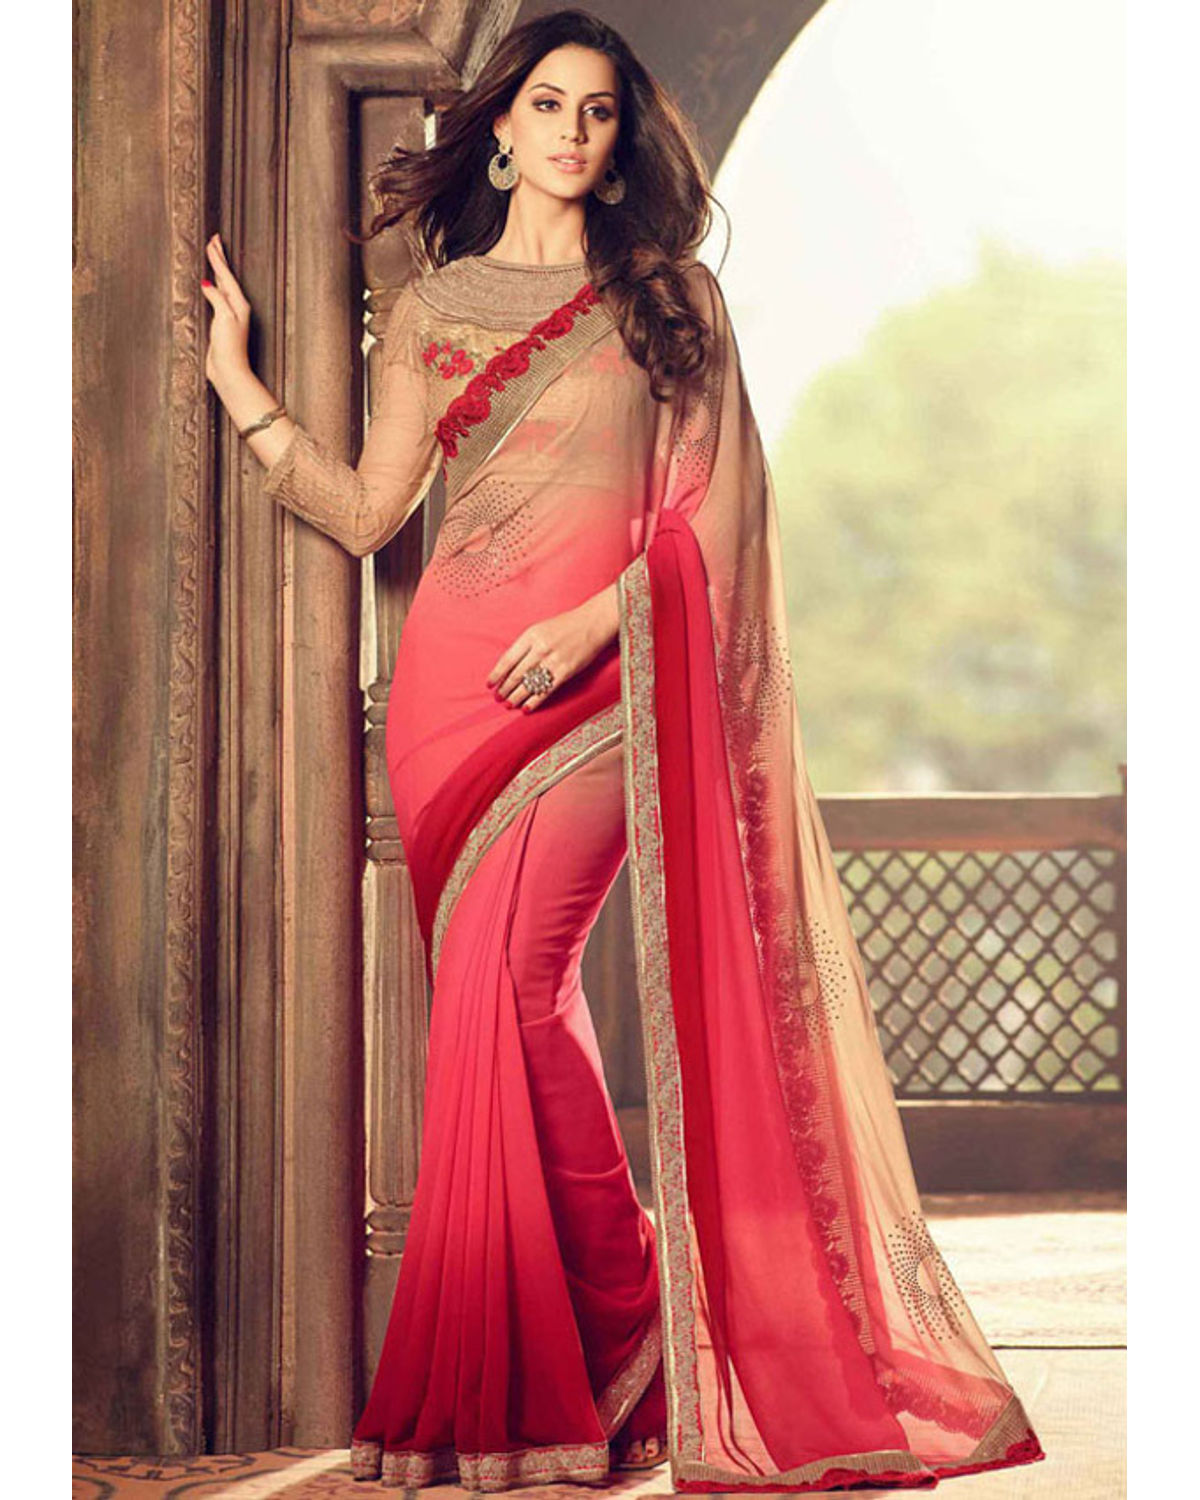 bb4e67f36a6 Red Color Party Wear Saree With Designer Blouse